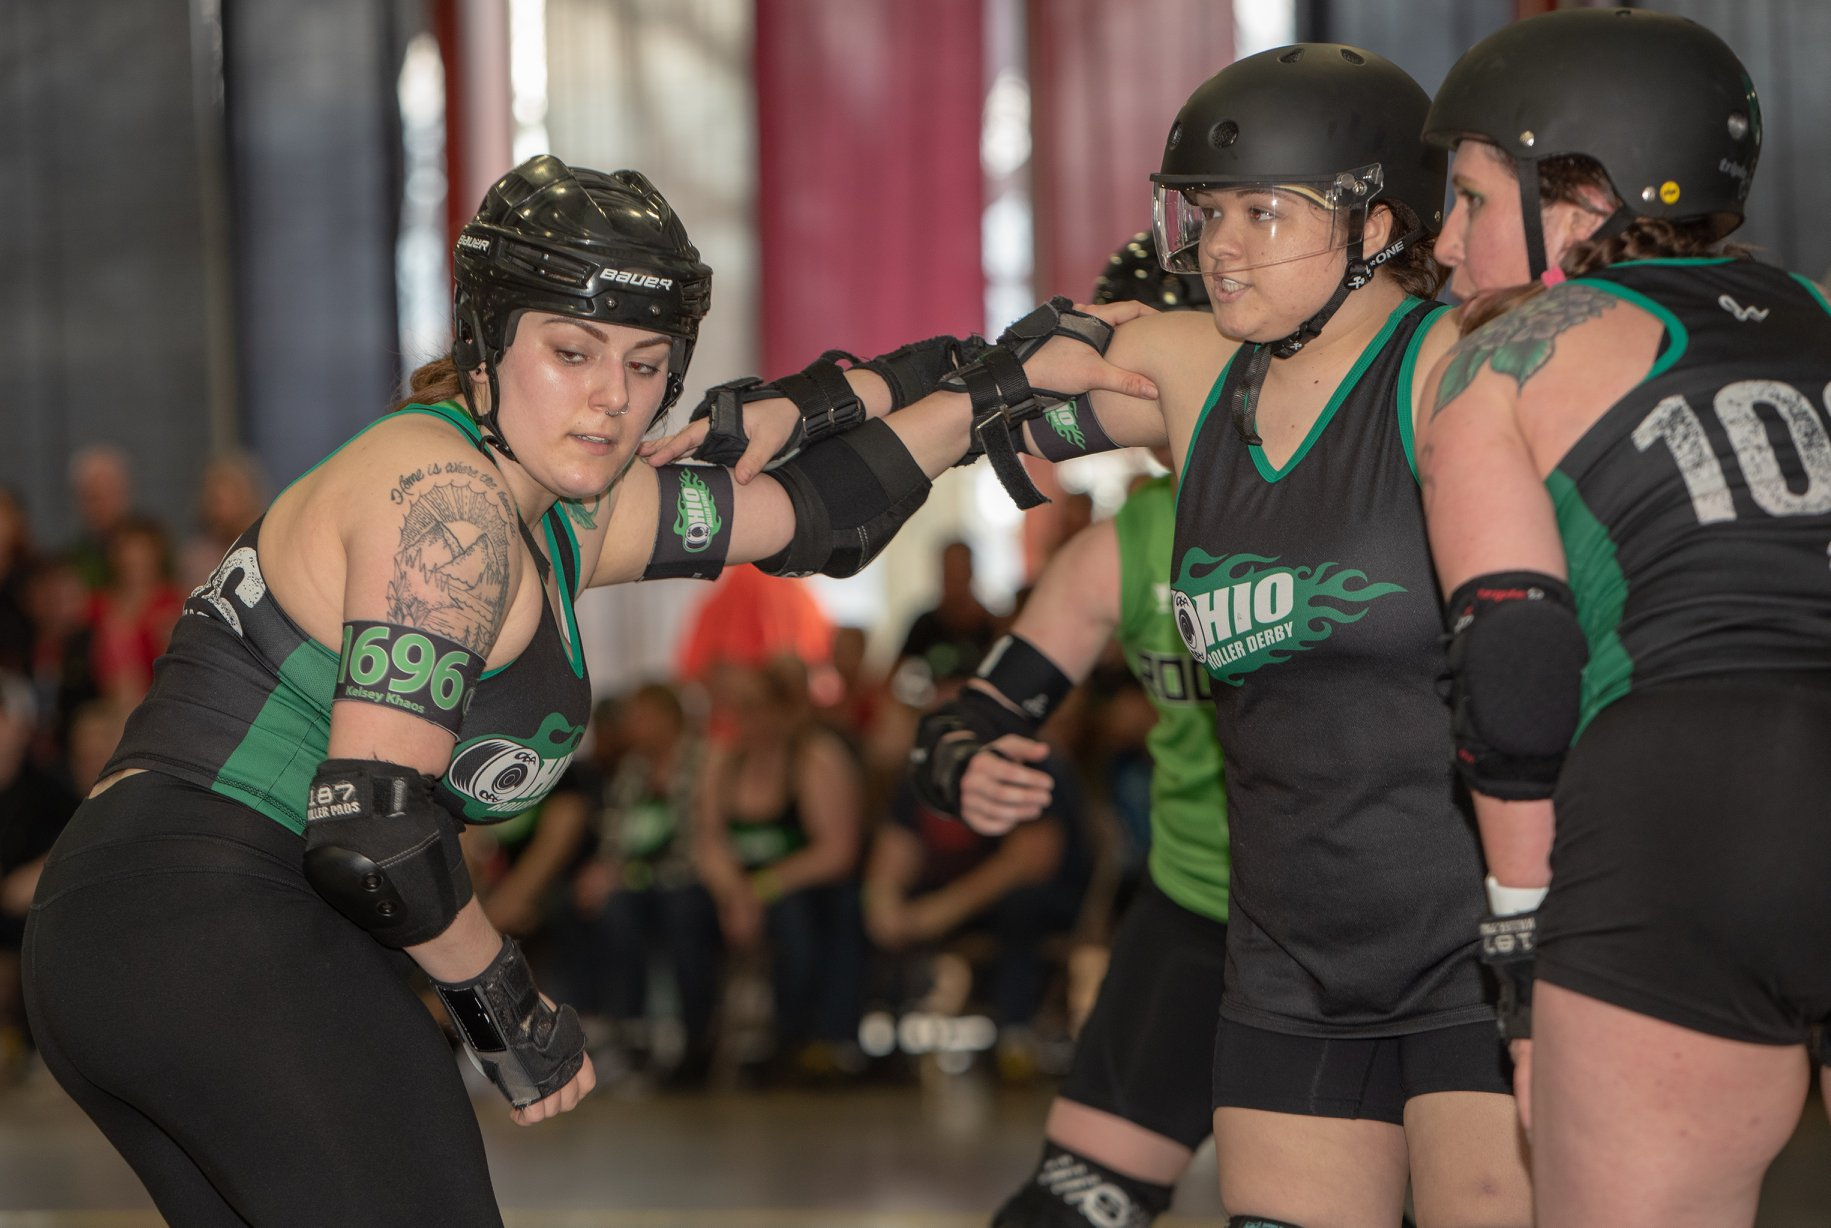 Kelsey Baby K Amy defense OHRD v Roc City 4.6.19 Chris Baker